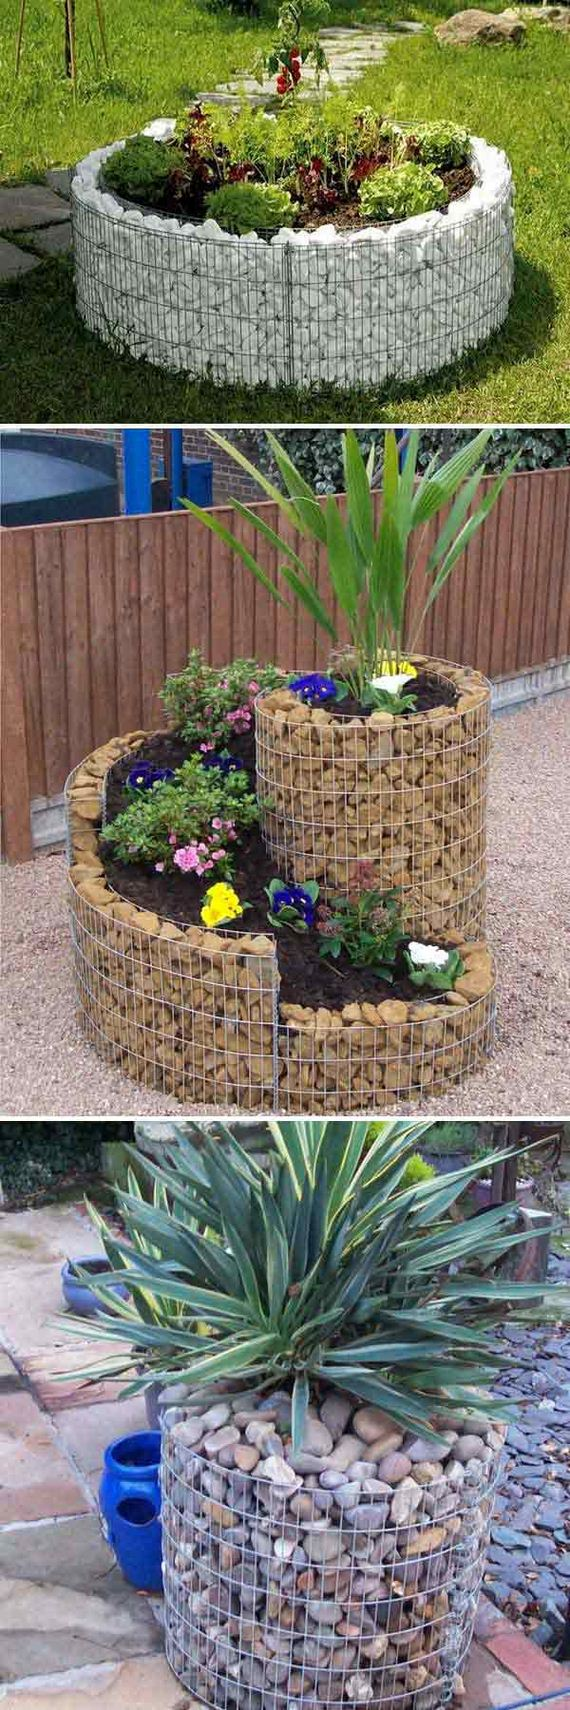 09-use-gabions-on-outdoor-projects